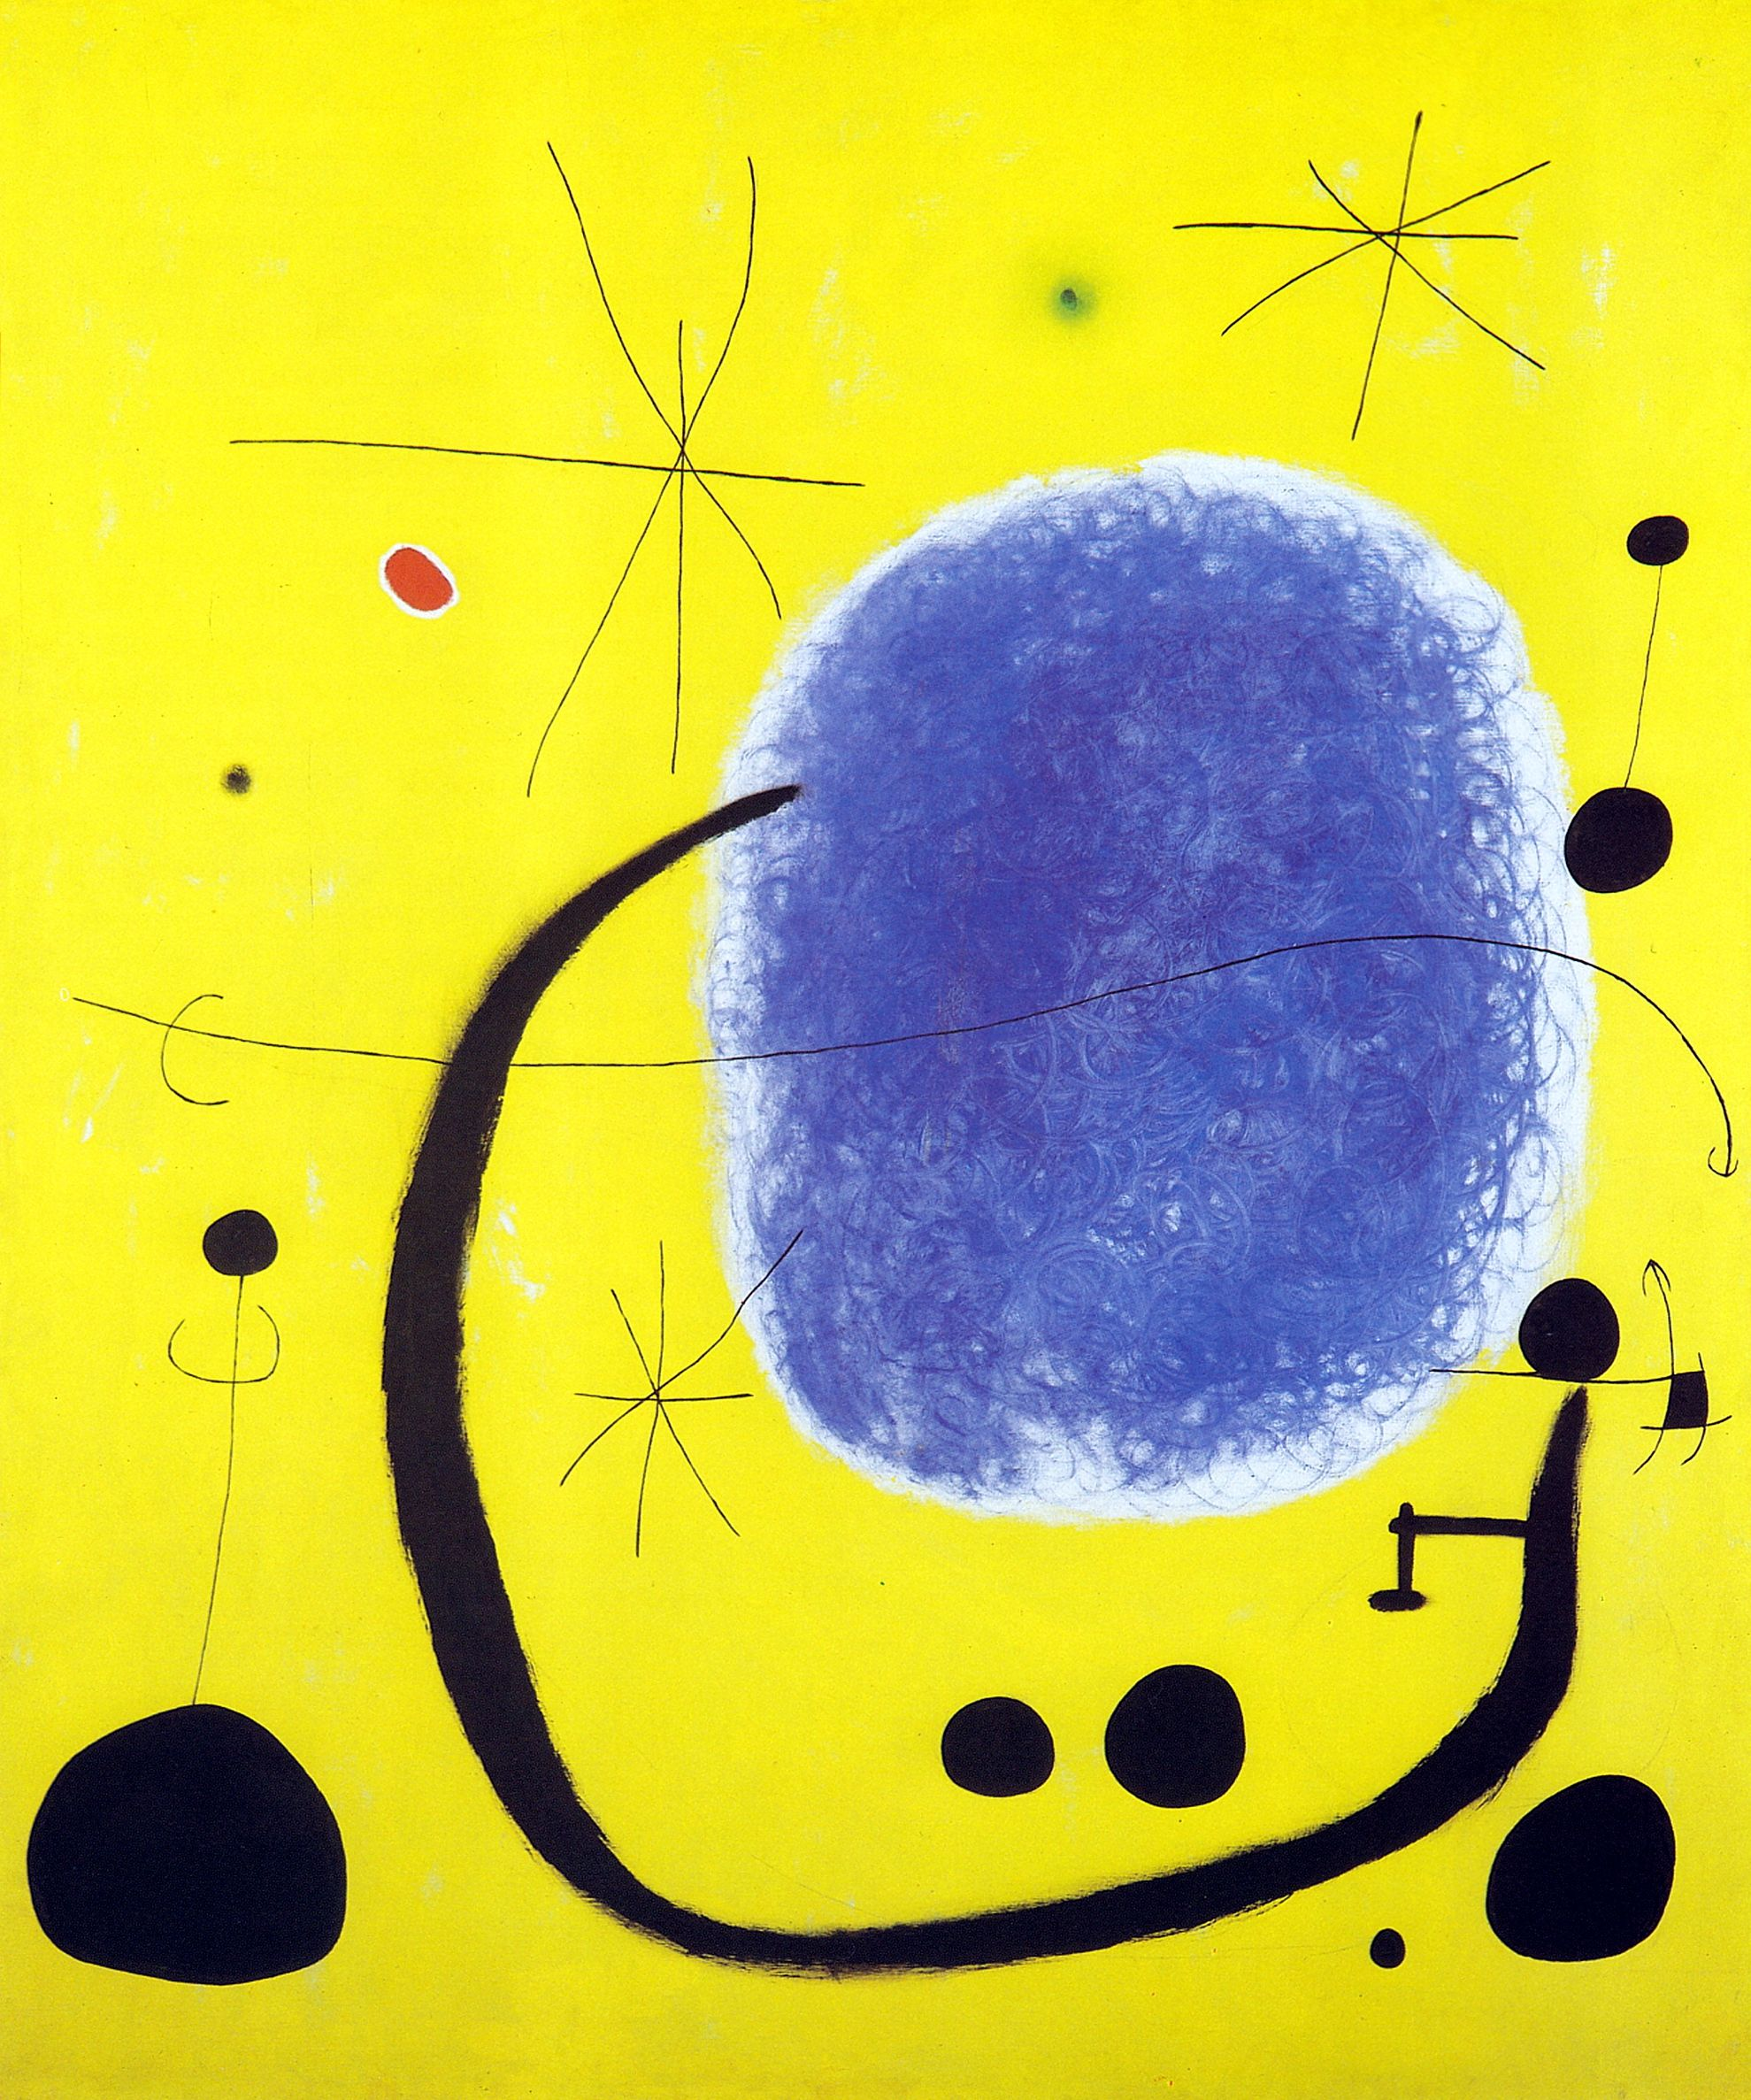 Juan Mirò, The gold of blue (1967).